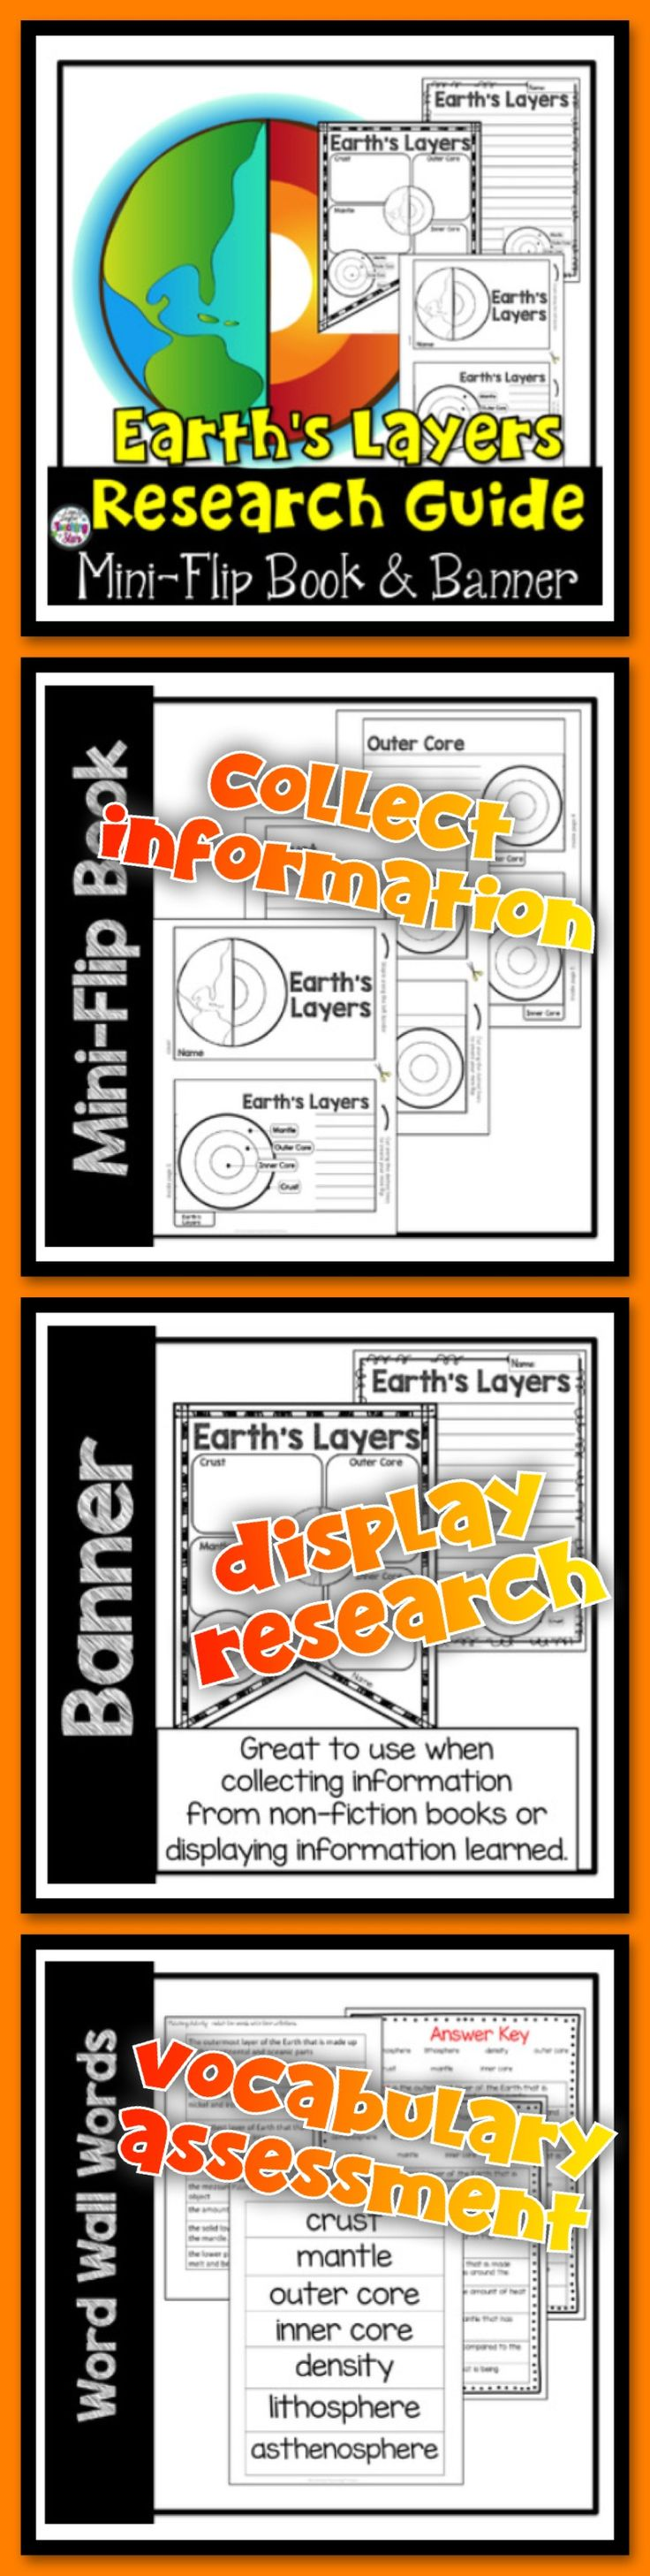 Earth's Layers Research Flip-Book and Banner will provide a graphic organizer students can use while researching about the Earth's Layers. Students will collect information on the Earth's Layers in their flip books. Students can also display their research on a Earth's Layers banner. Word Wall Words are also included with a vocabulary assessment.  These resources were designed for grades 4th-6th to use to organize students' research about The Earth's Layers.